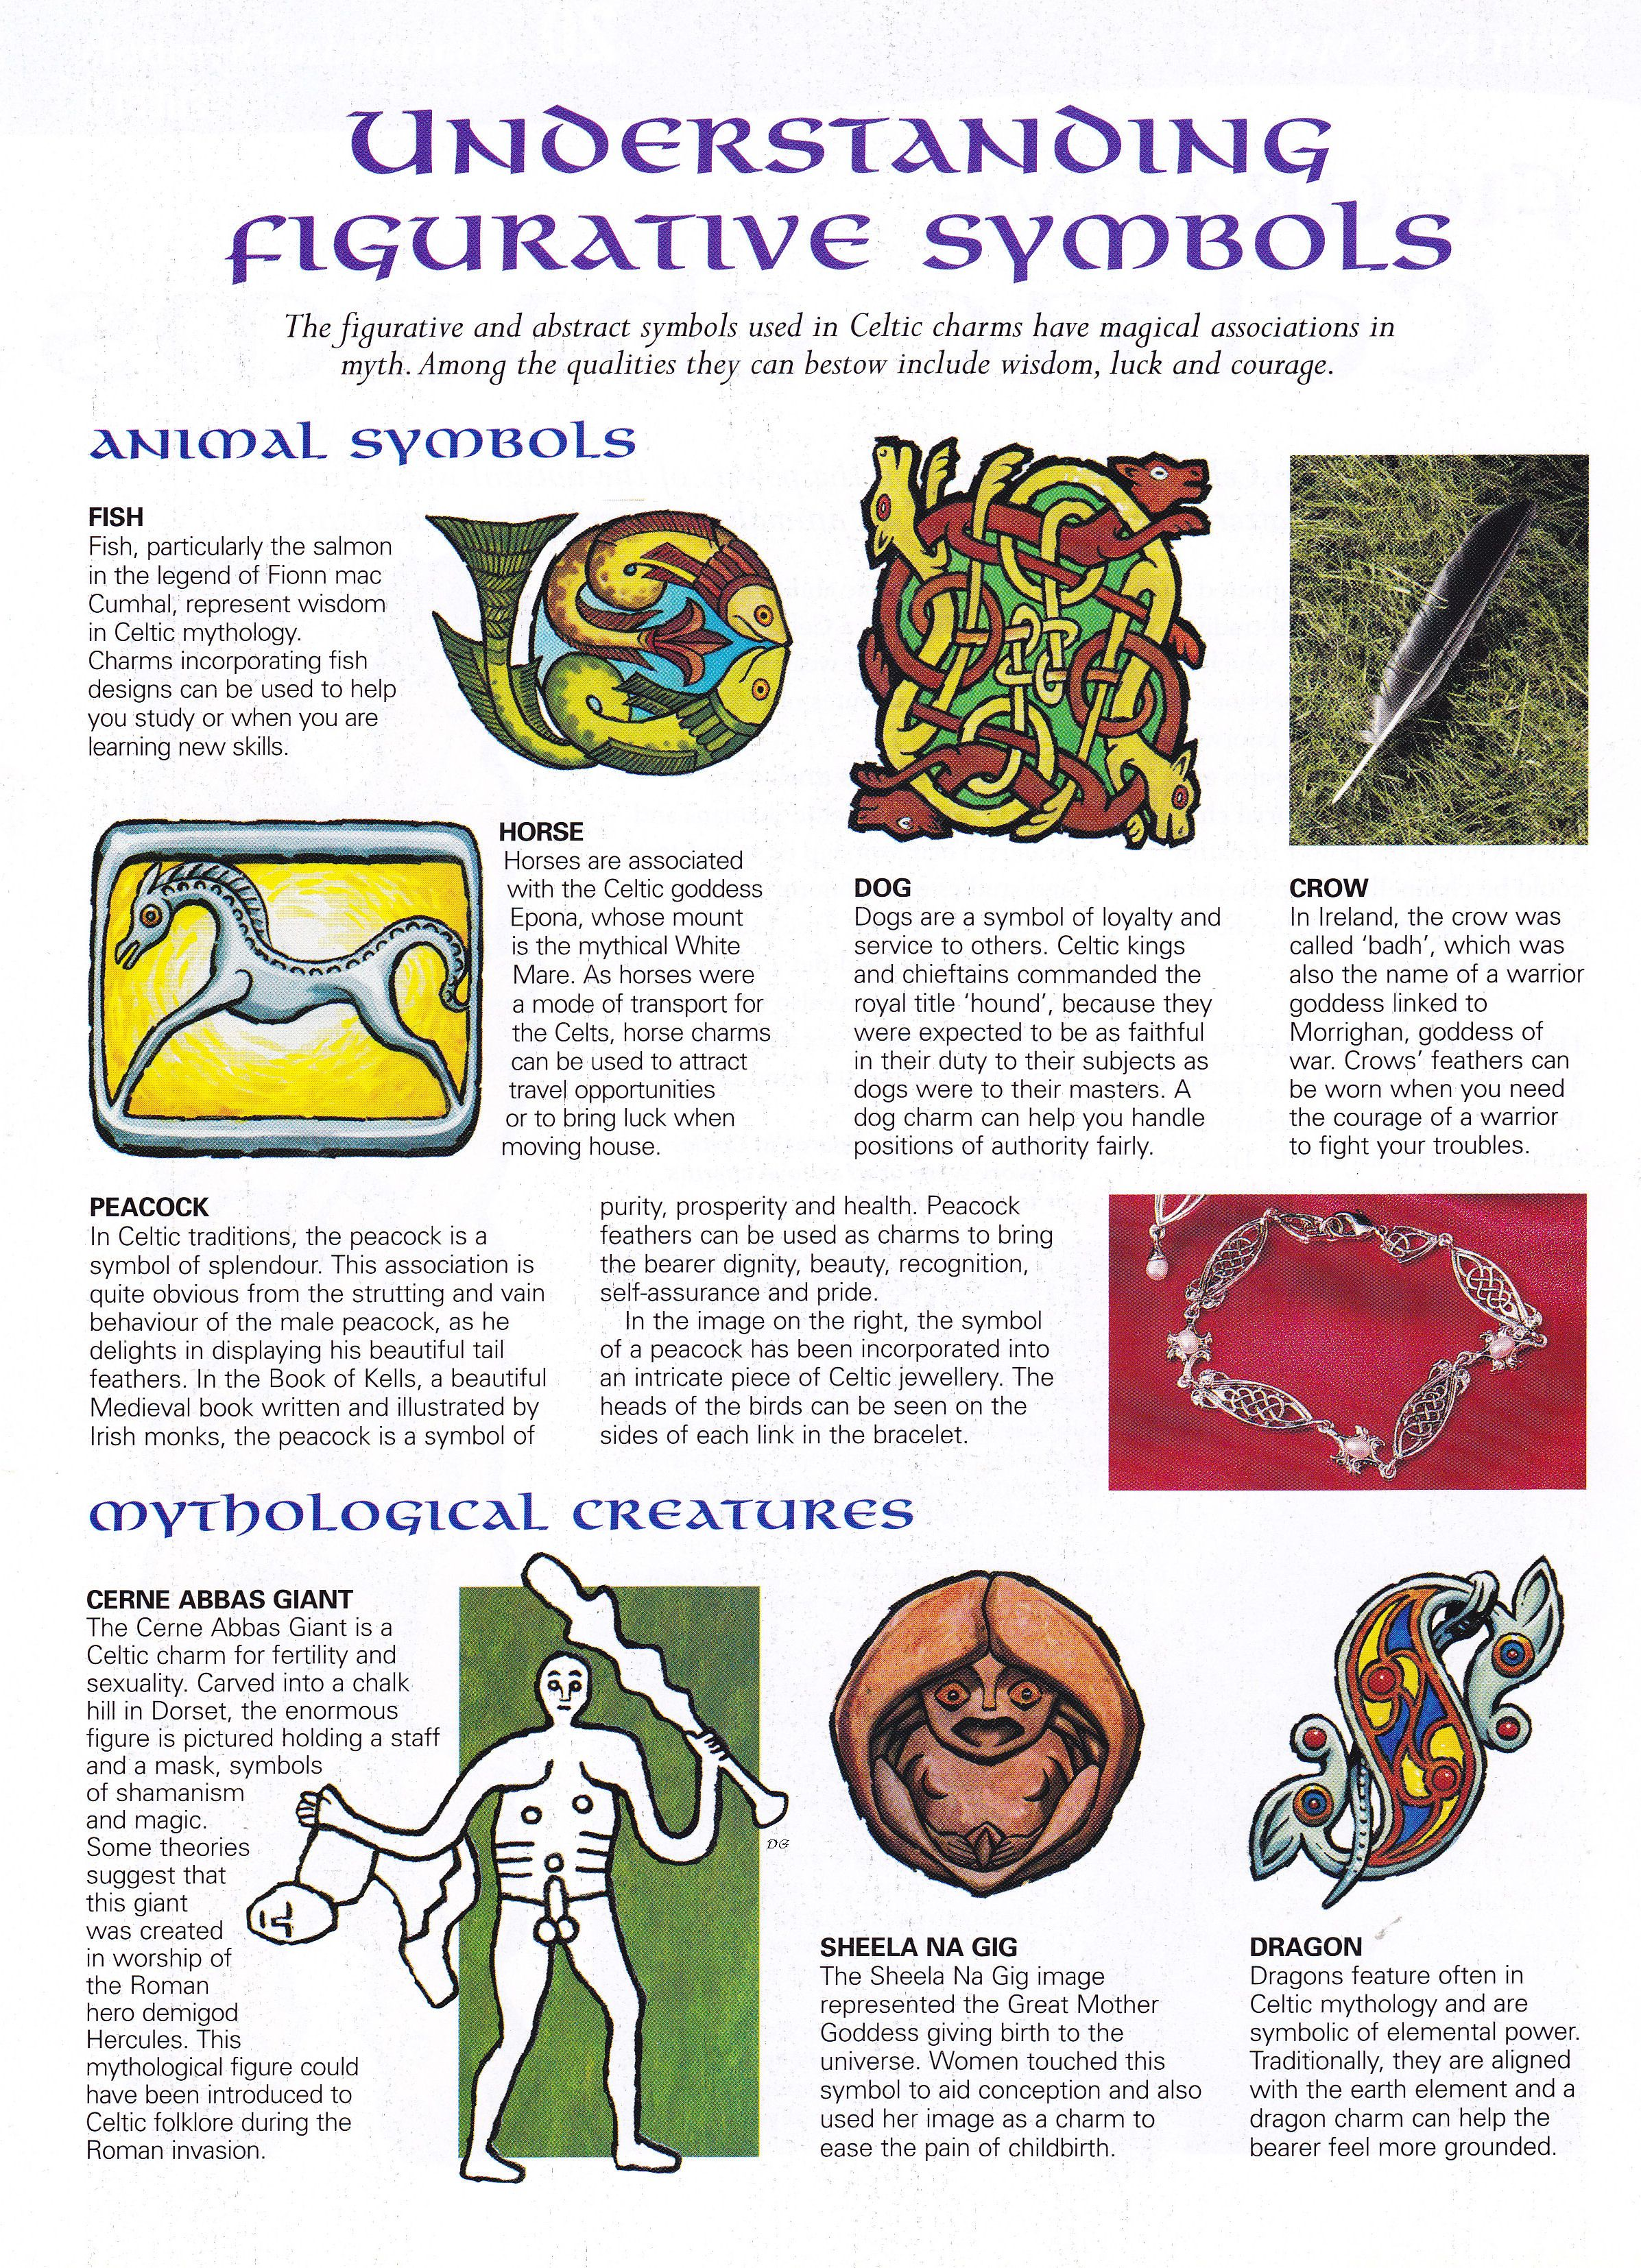 Book of shadows bos understanding figurative symbols page book of shadows bos understanding figurative symbols page biocorpaavc Gallery